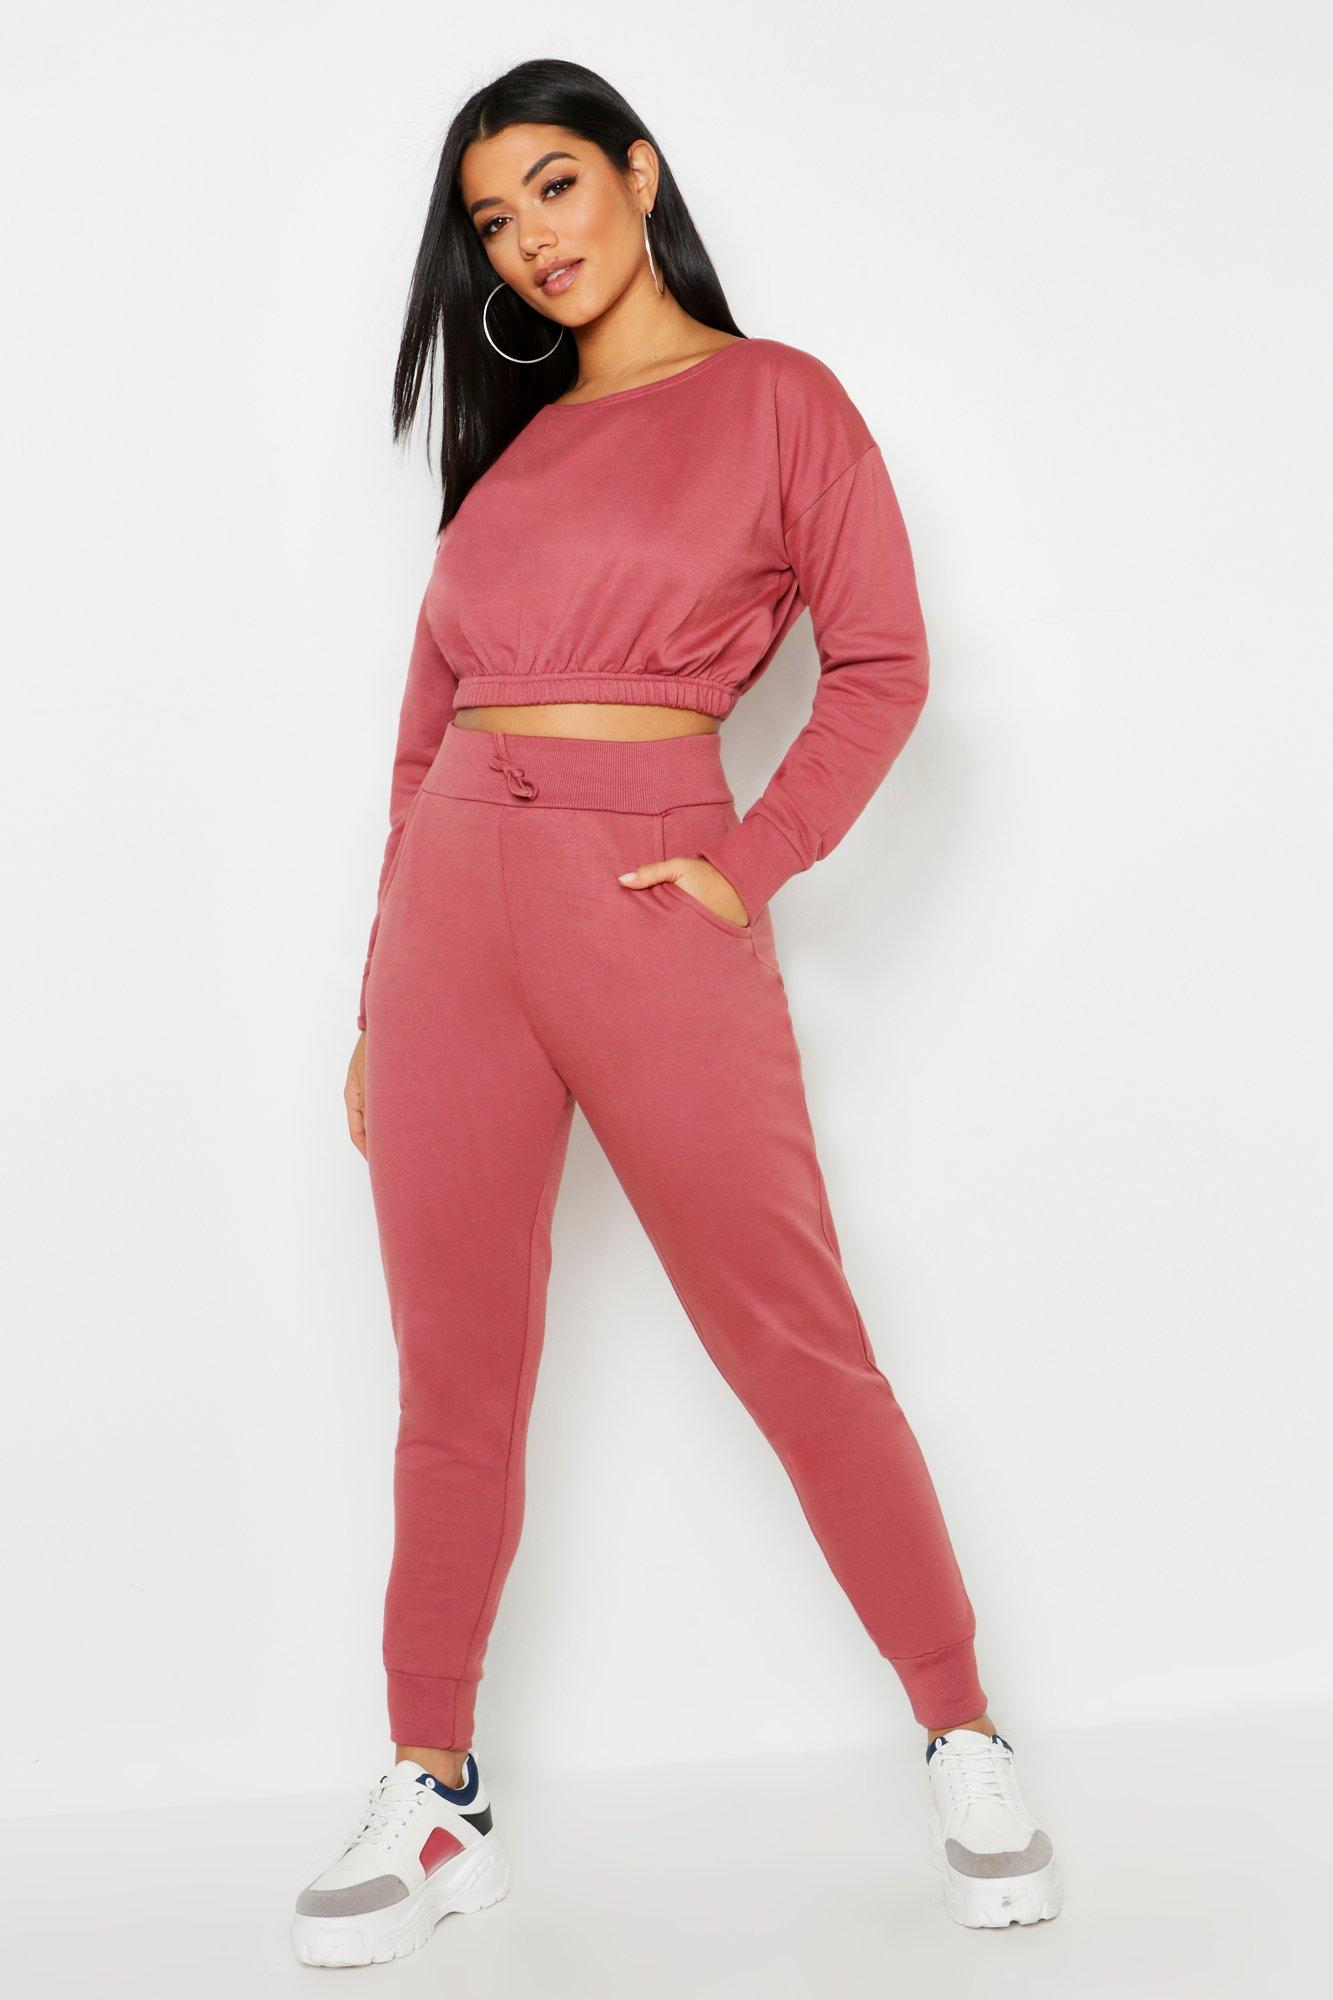 Womens Slash Neck Elastic Waist Top & Jogger Set - hot pink - 34, Hot Pink - Boohoo.com